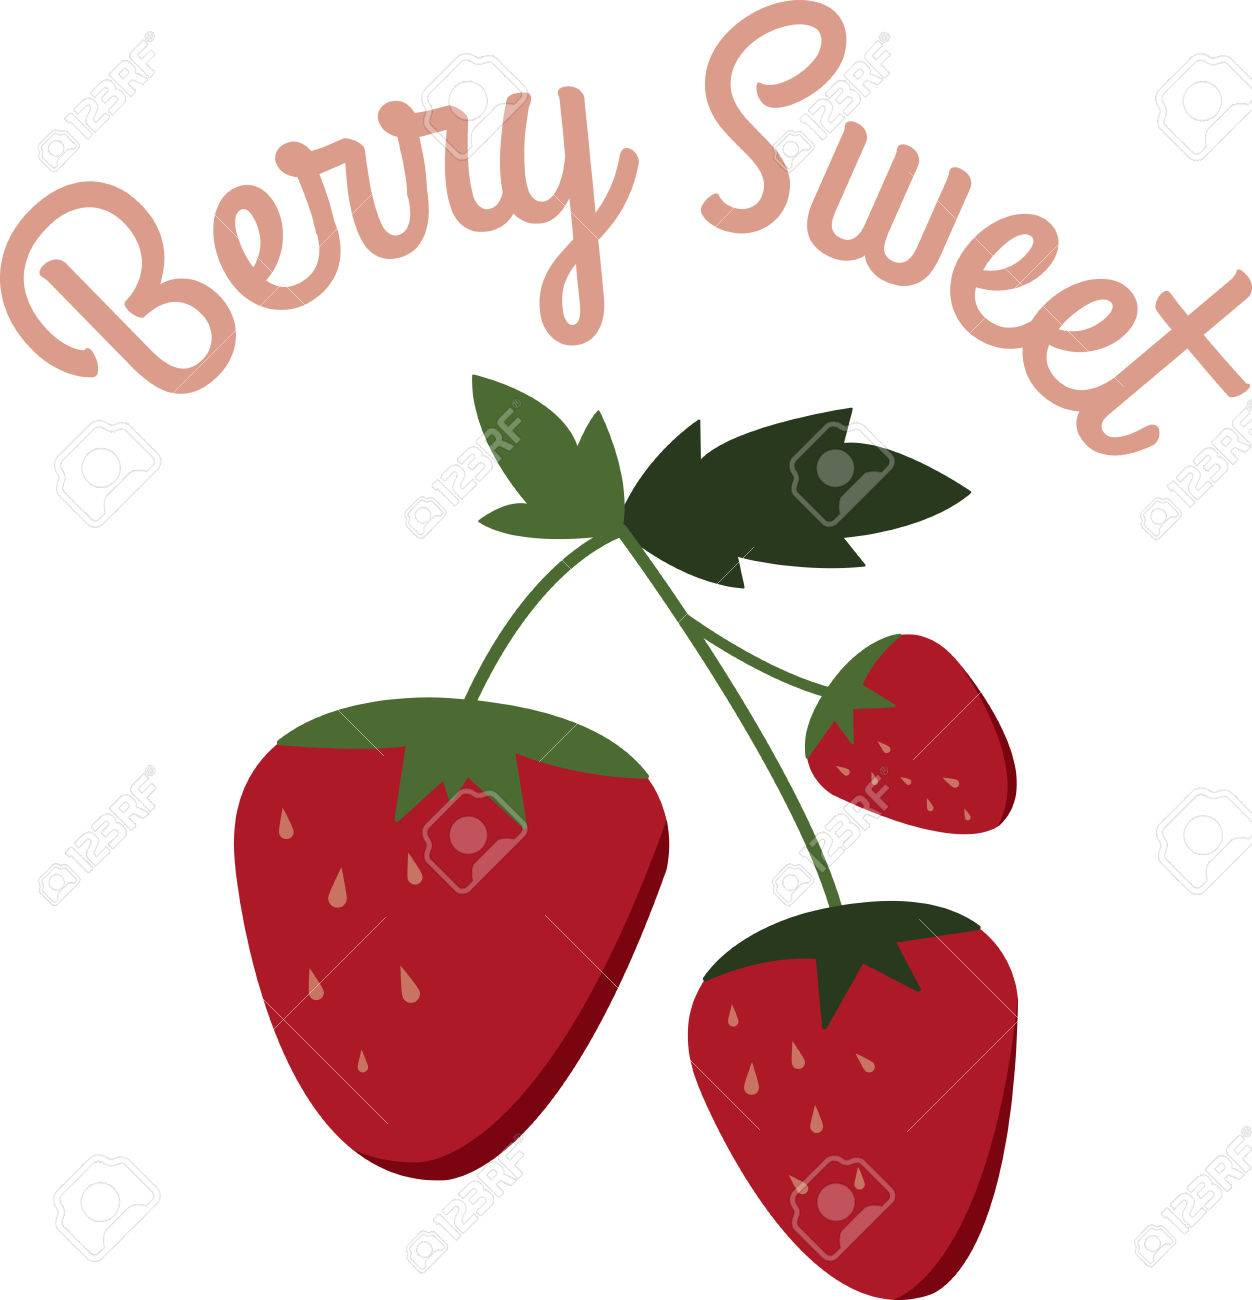 Enjoy Ripe Strawberries Vector - Little screams summer quite like the sweet scent and ripe taste of fresh, plump strawberries. Enjoy the harvest with this design on kitchen linen, ...